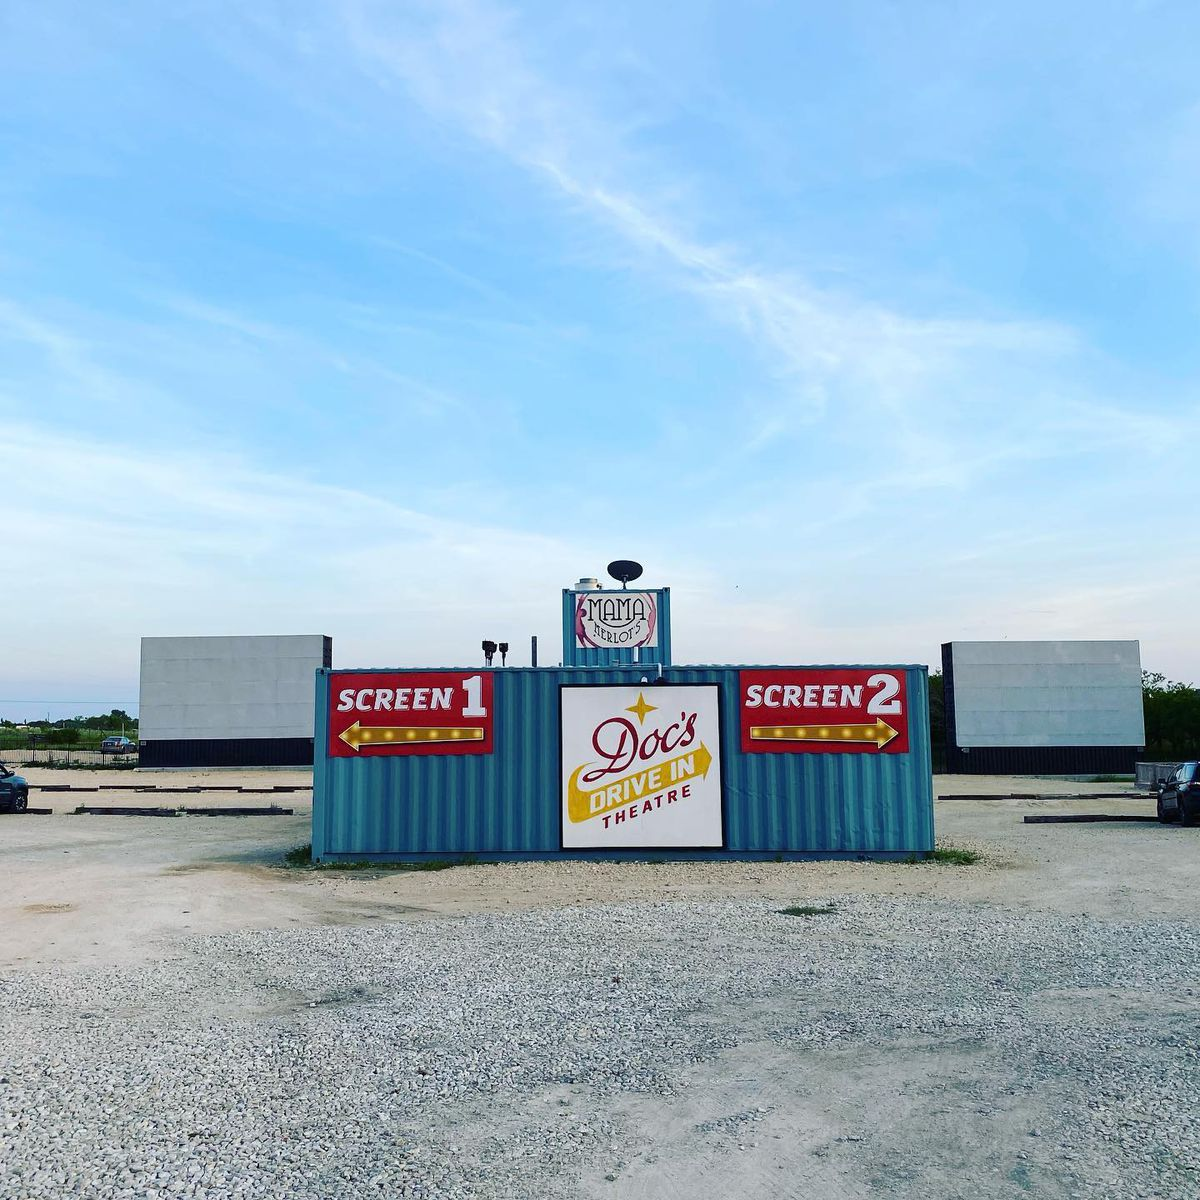 "A container unit with a white sign in the middle that reads ""Doc's Drive In Theatre"" and two red signs on the ends that read ""Screen 1"" and ""Screen 2"" with arrows pointing left and right respectively, and in the background are two blank movie screens, all outside"